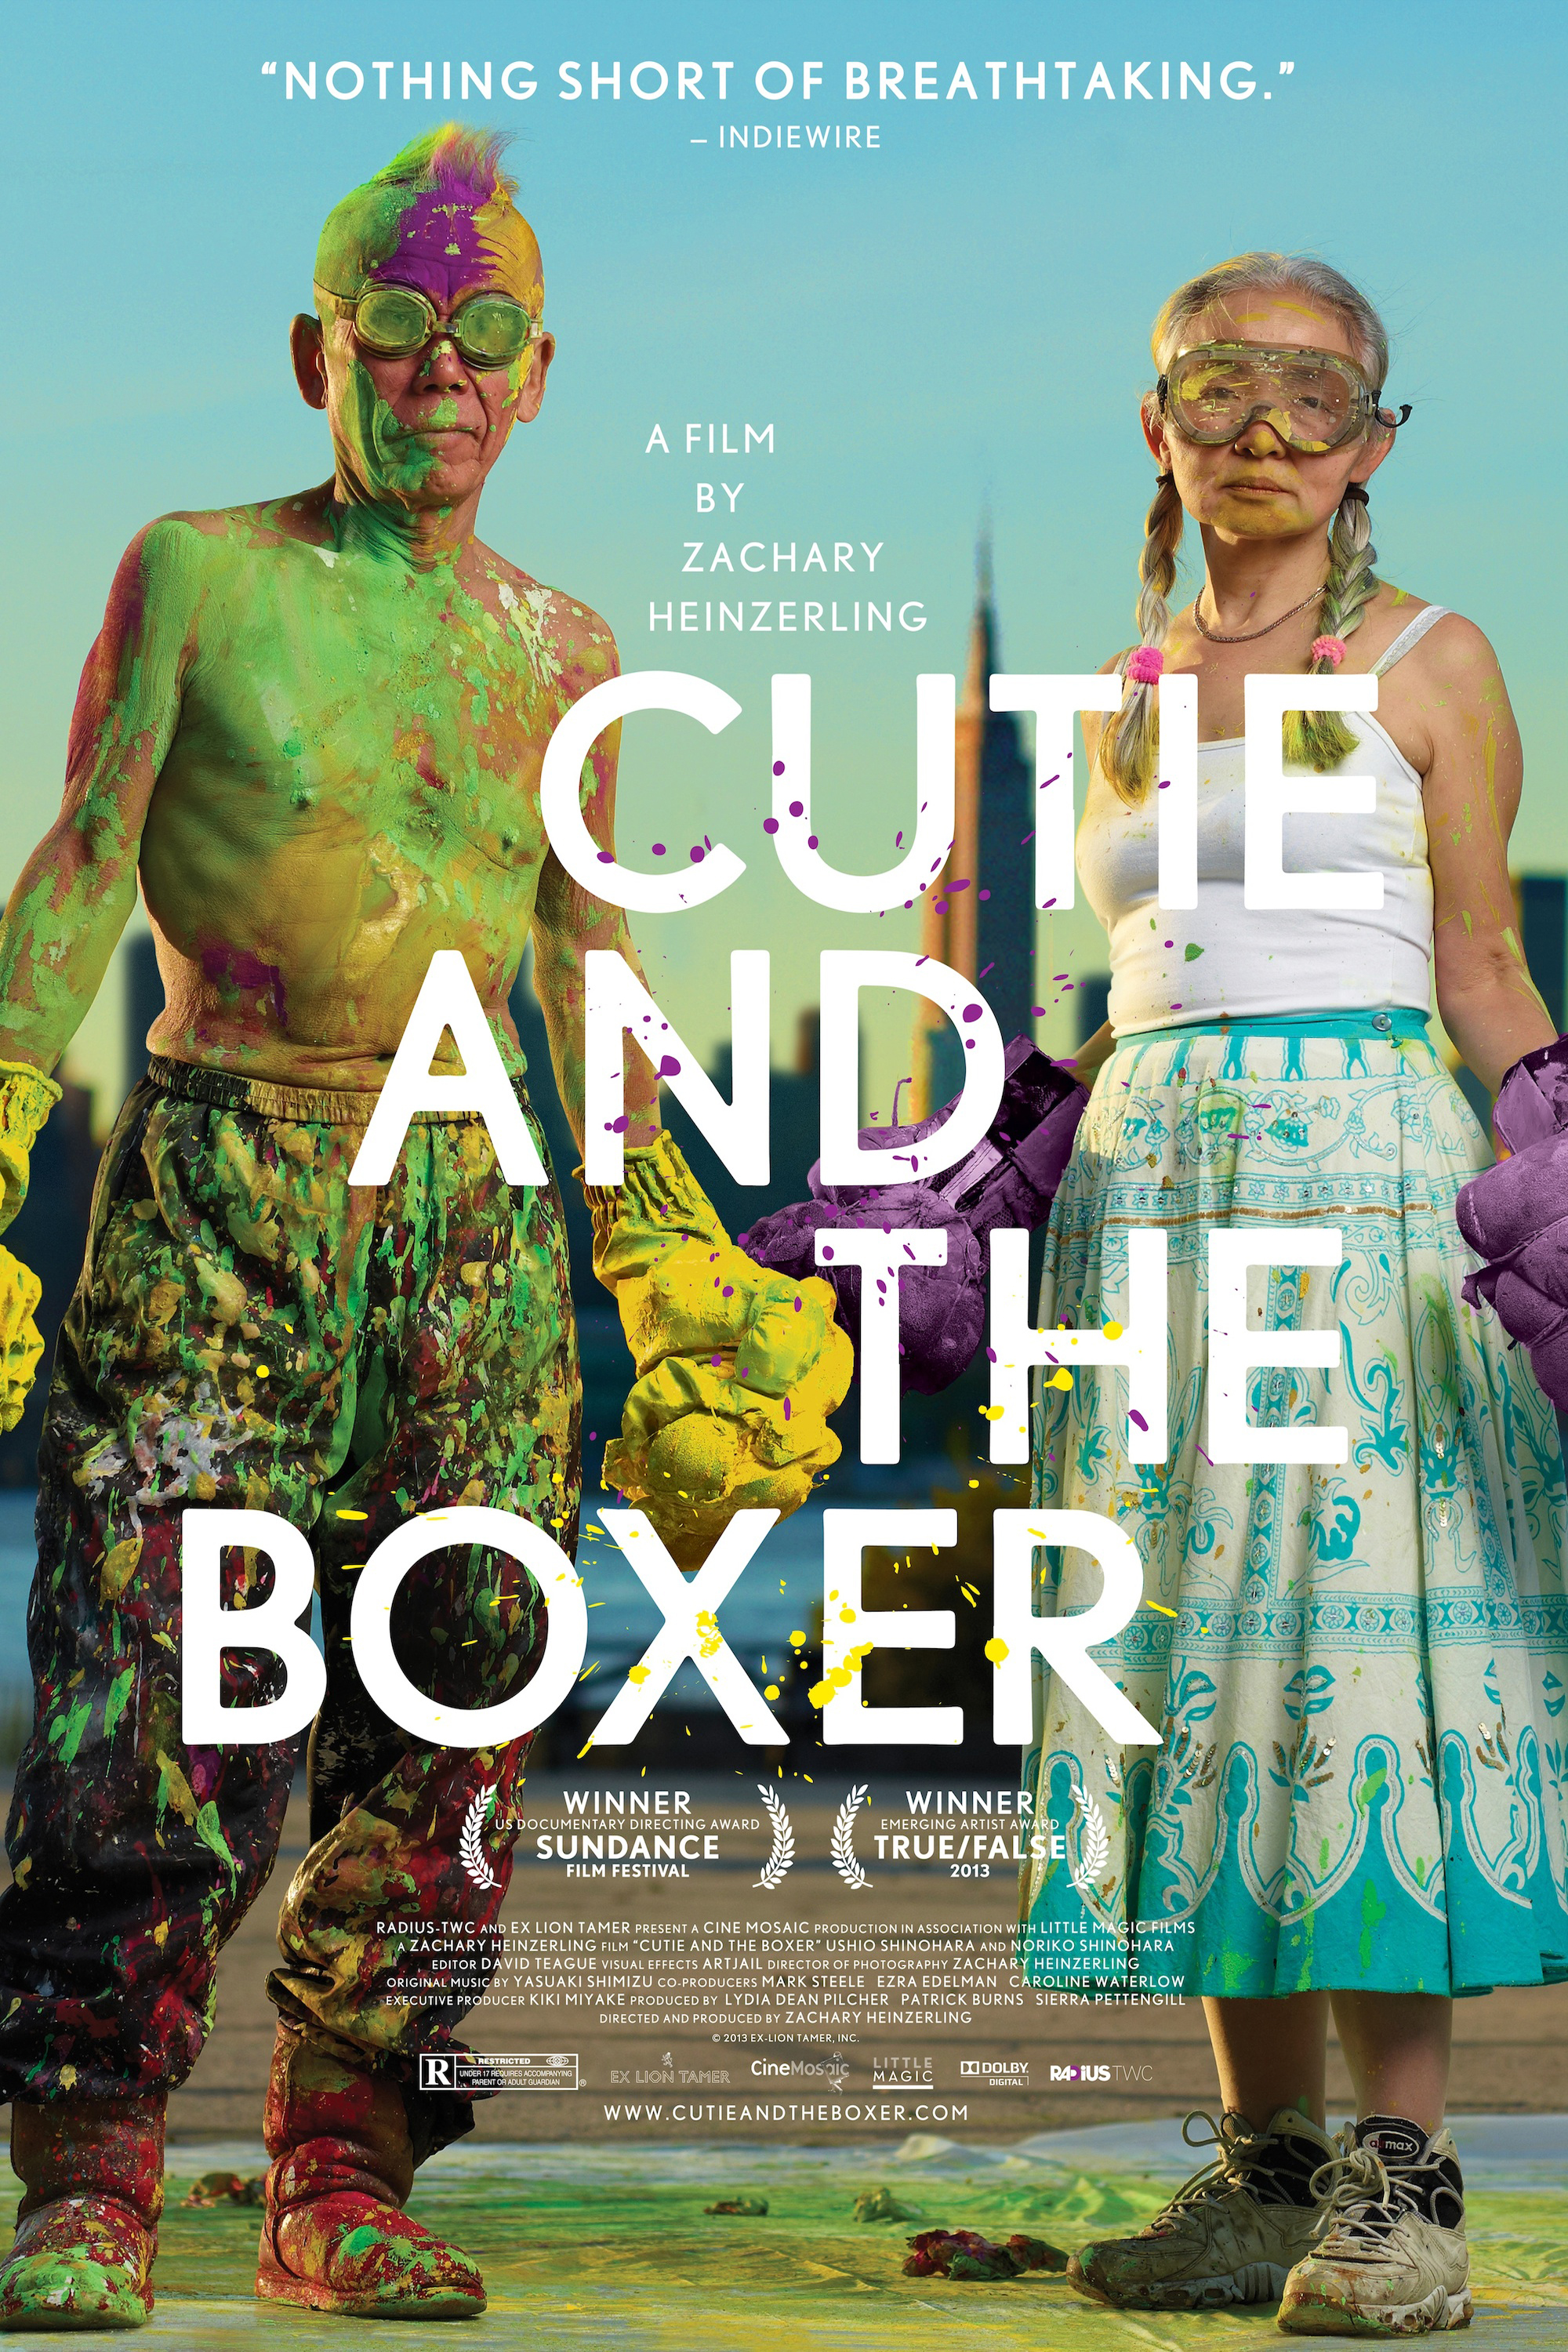 Cutie and the boxer / [directed by Zachary Heinzerling].